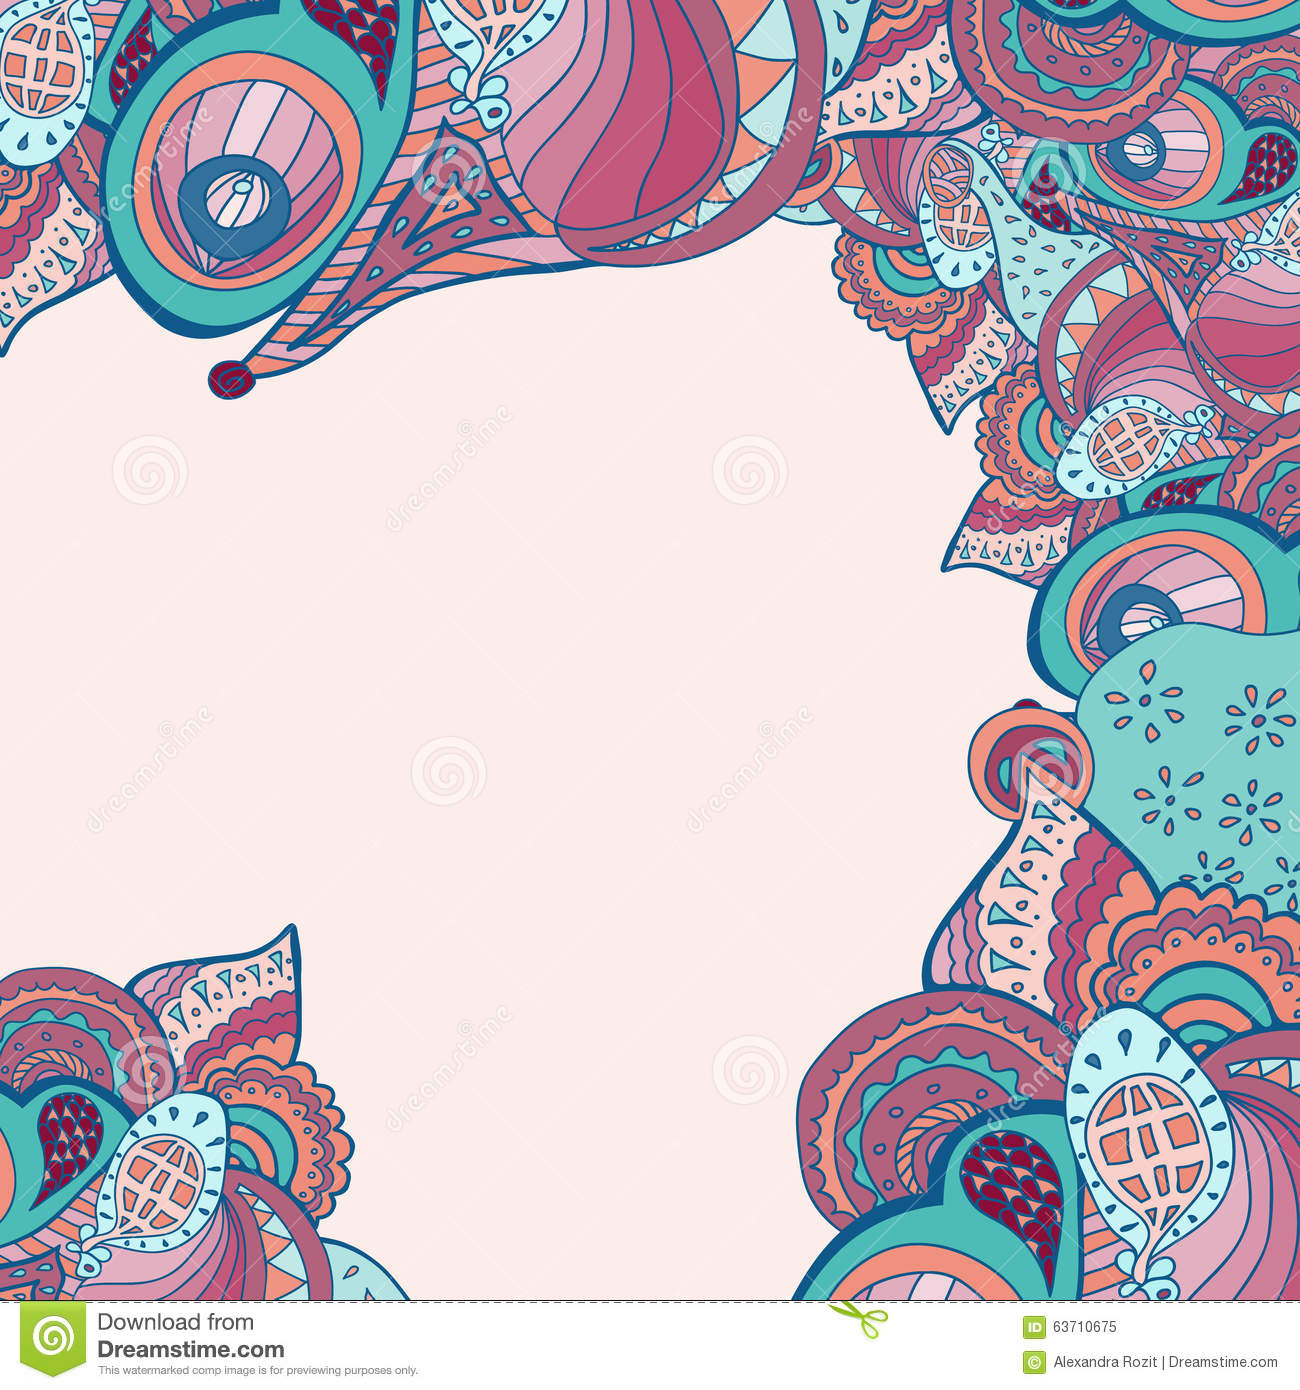 Vector Abstract Doodle Psychedelic Border Stock Vector